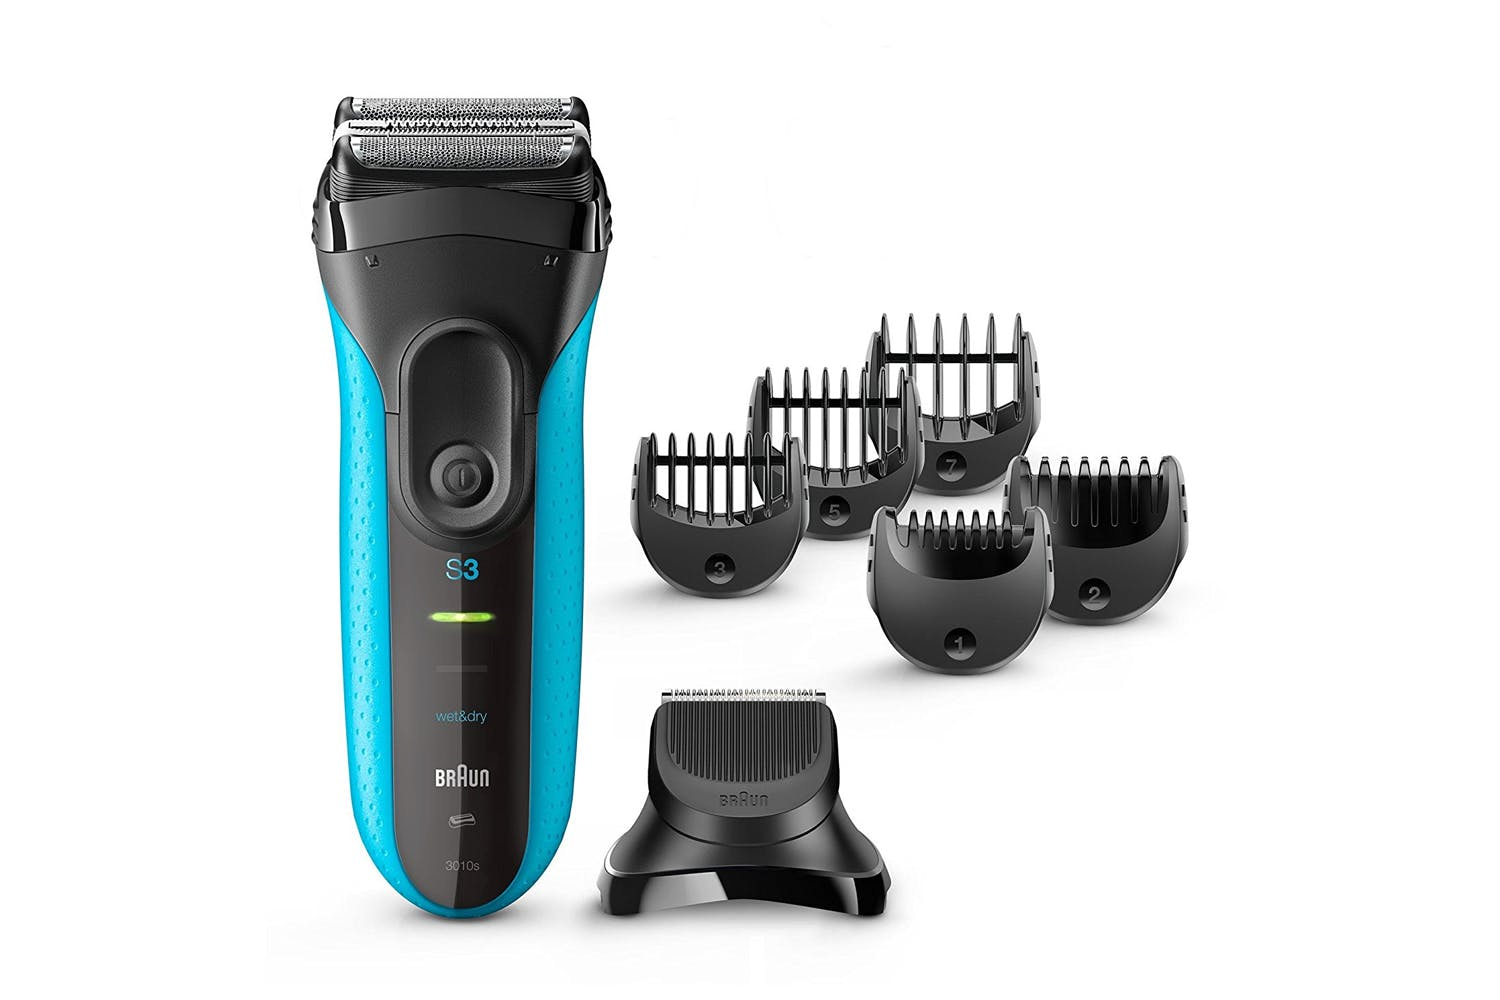 braun series 3 mens electric shaver harvey norman new zealand. Black Bedroom Furniture Sets. Home Design Ideas